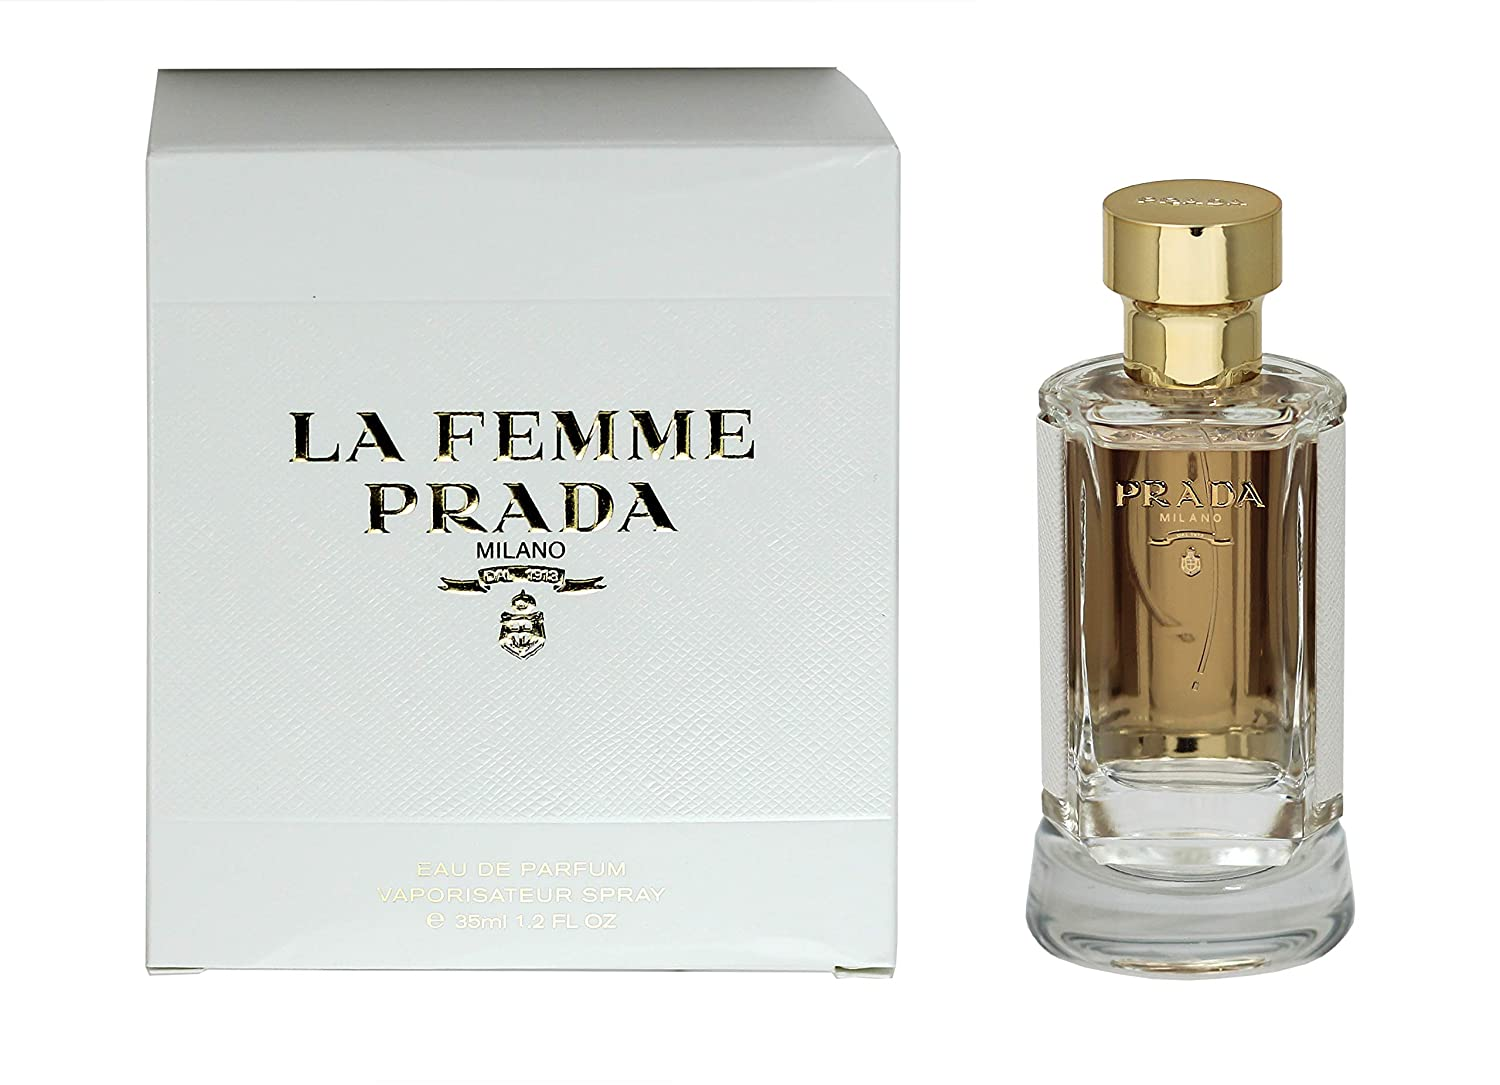 faa528f3fca17 Amazon.com  Prada La Femme Eau de Parfum 1.2oz (35ml) Spray  Clothing